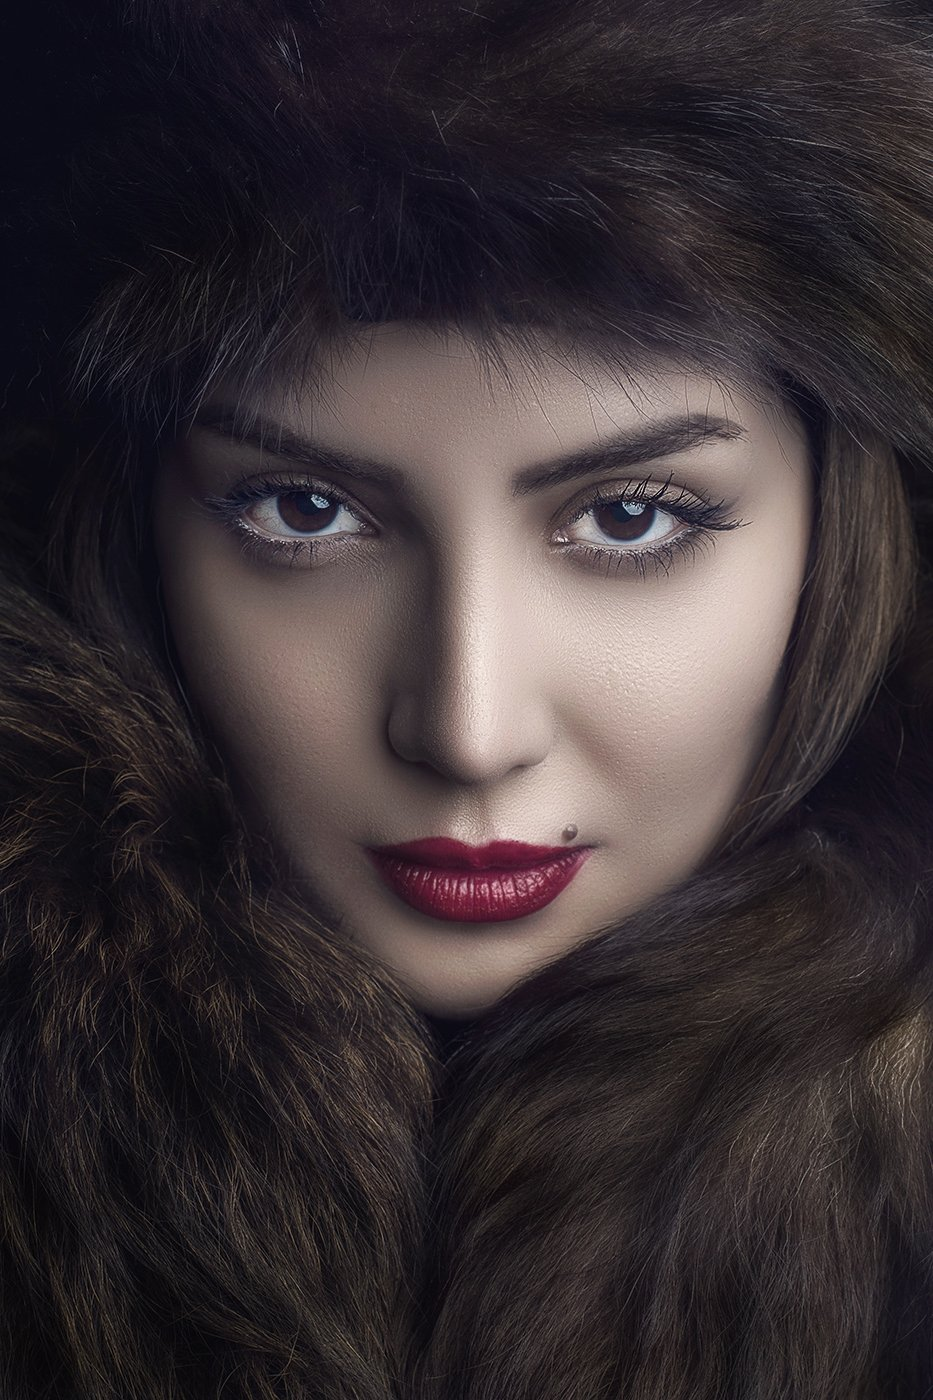 #portrait #girls #woman #eyes #look,  Mehrzad maghsoodian